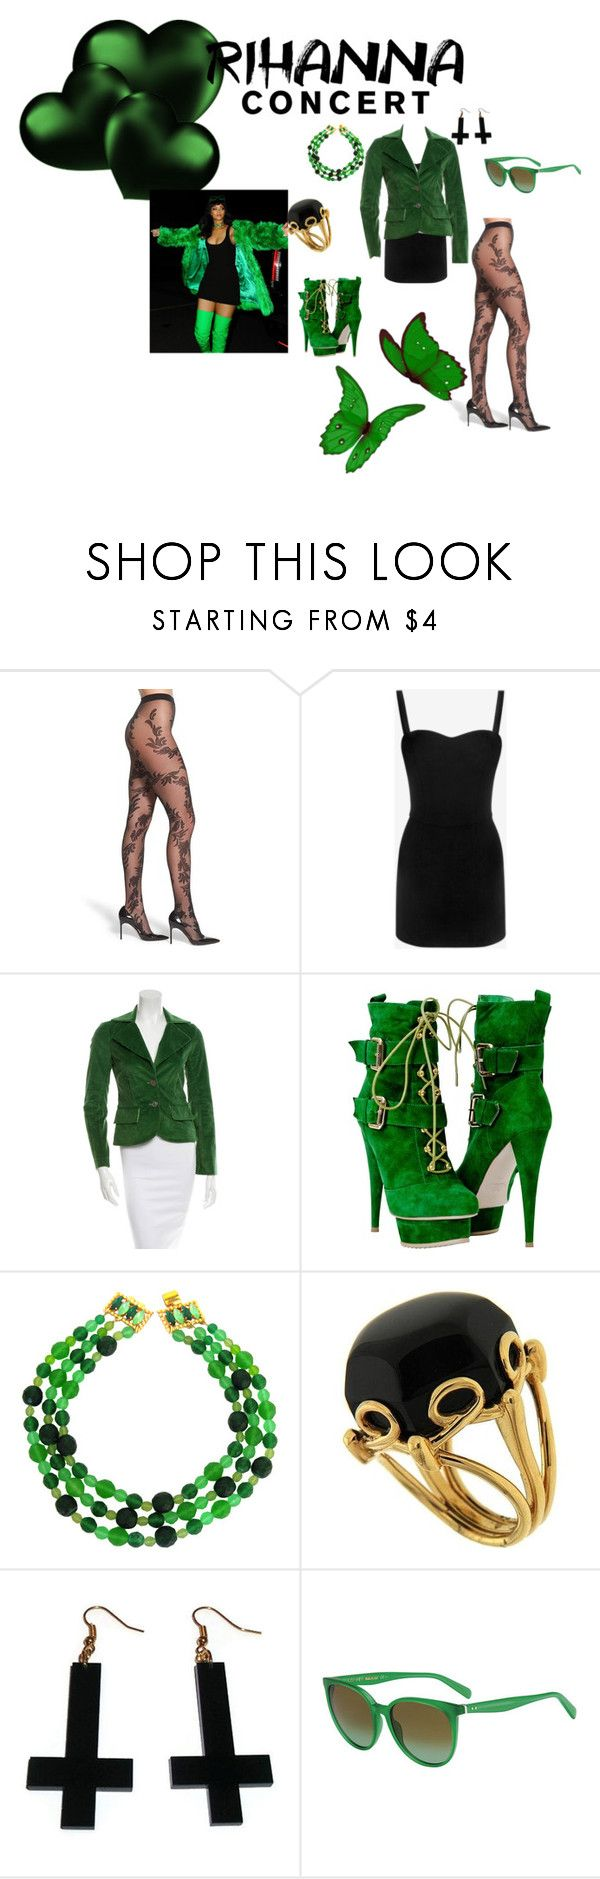 Rihanna concert by kelly17-kalymnos on Polyvore featuring Alexander McQueen, Alice + Olivia, OROBLU, Valentin Magro, DOMINIQUE AURIENTIS, Chicnova Fashion and CÉLINE